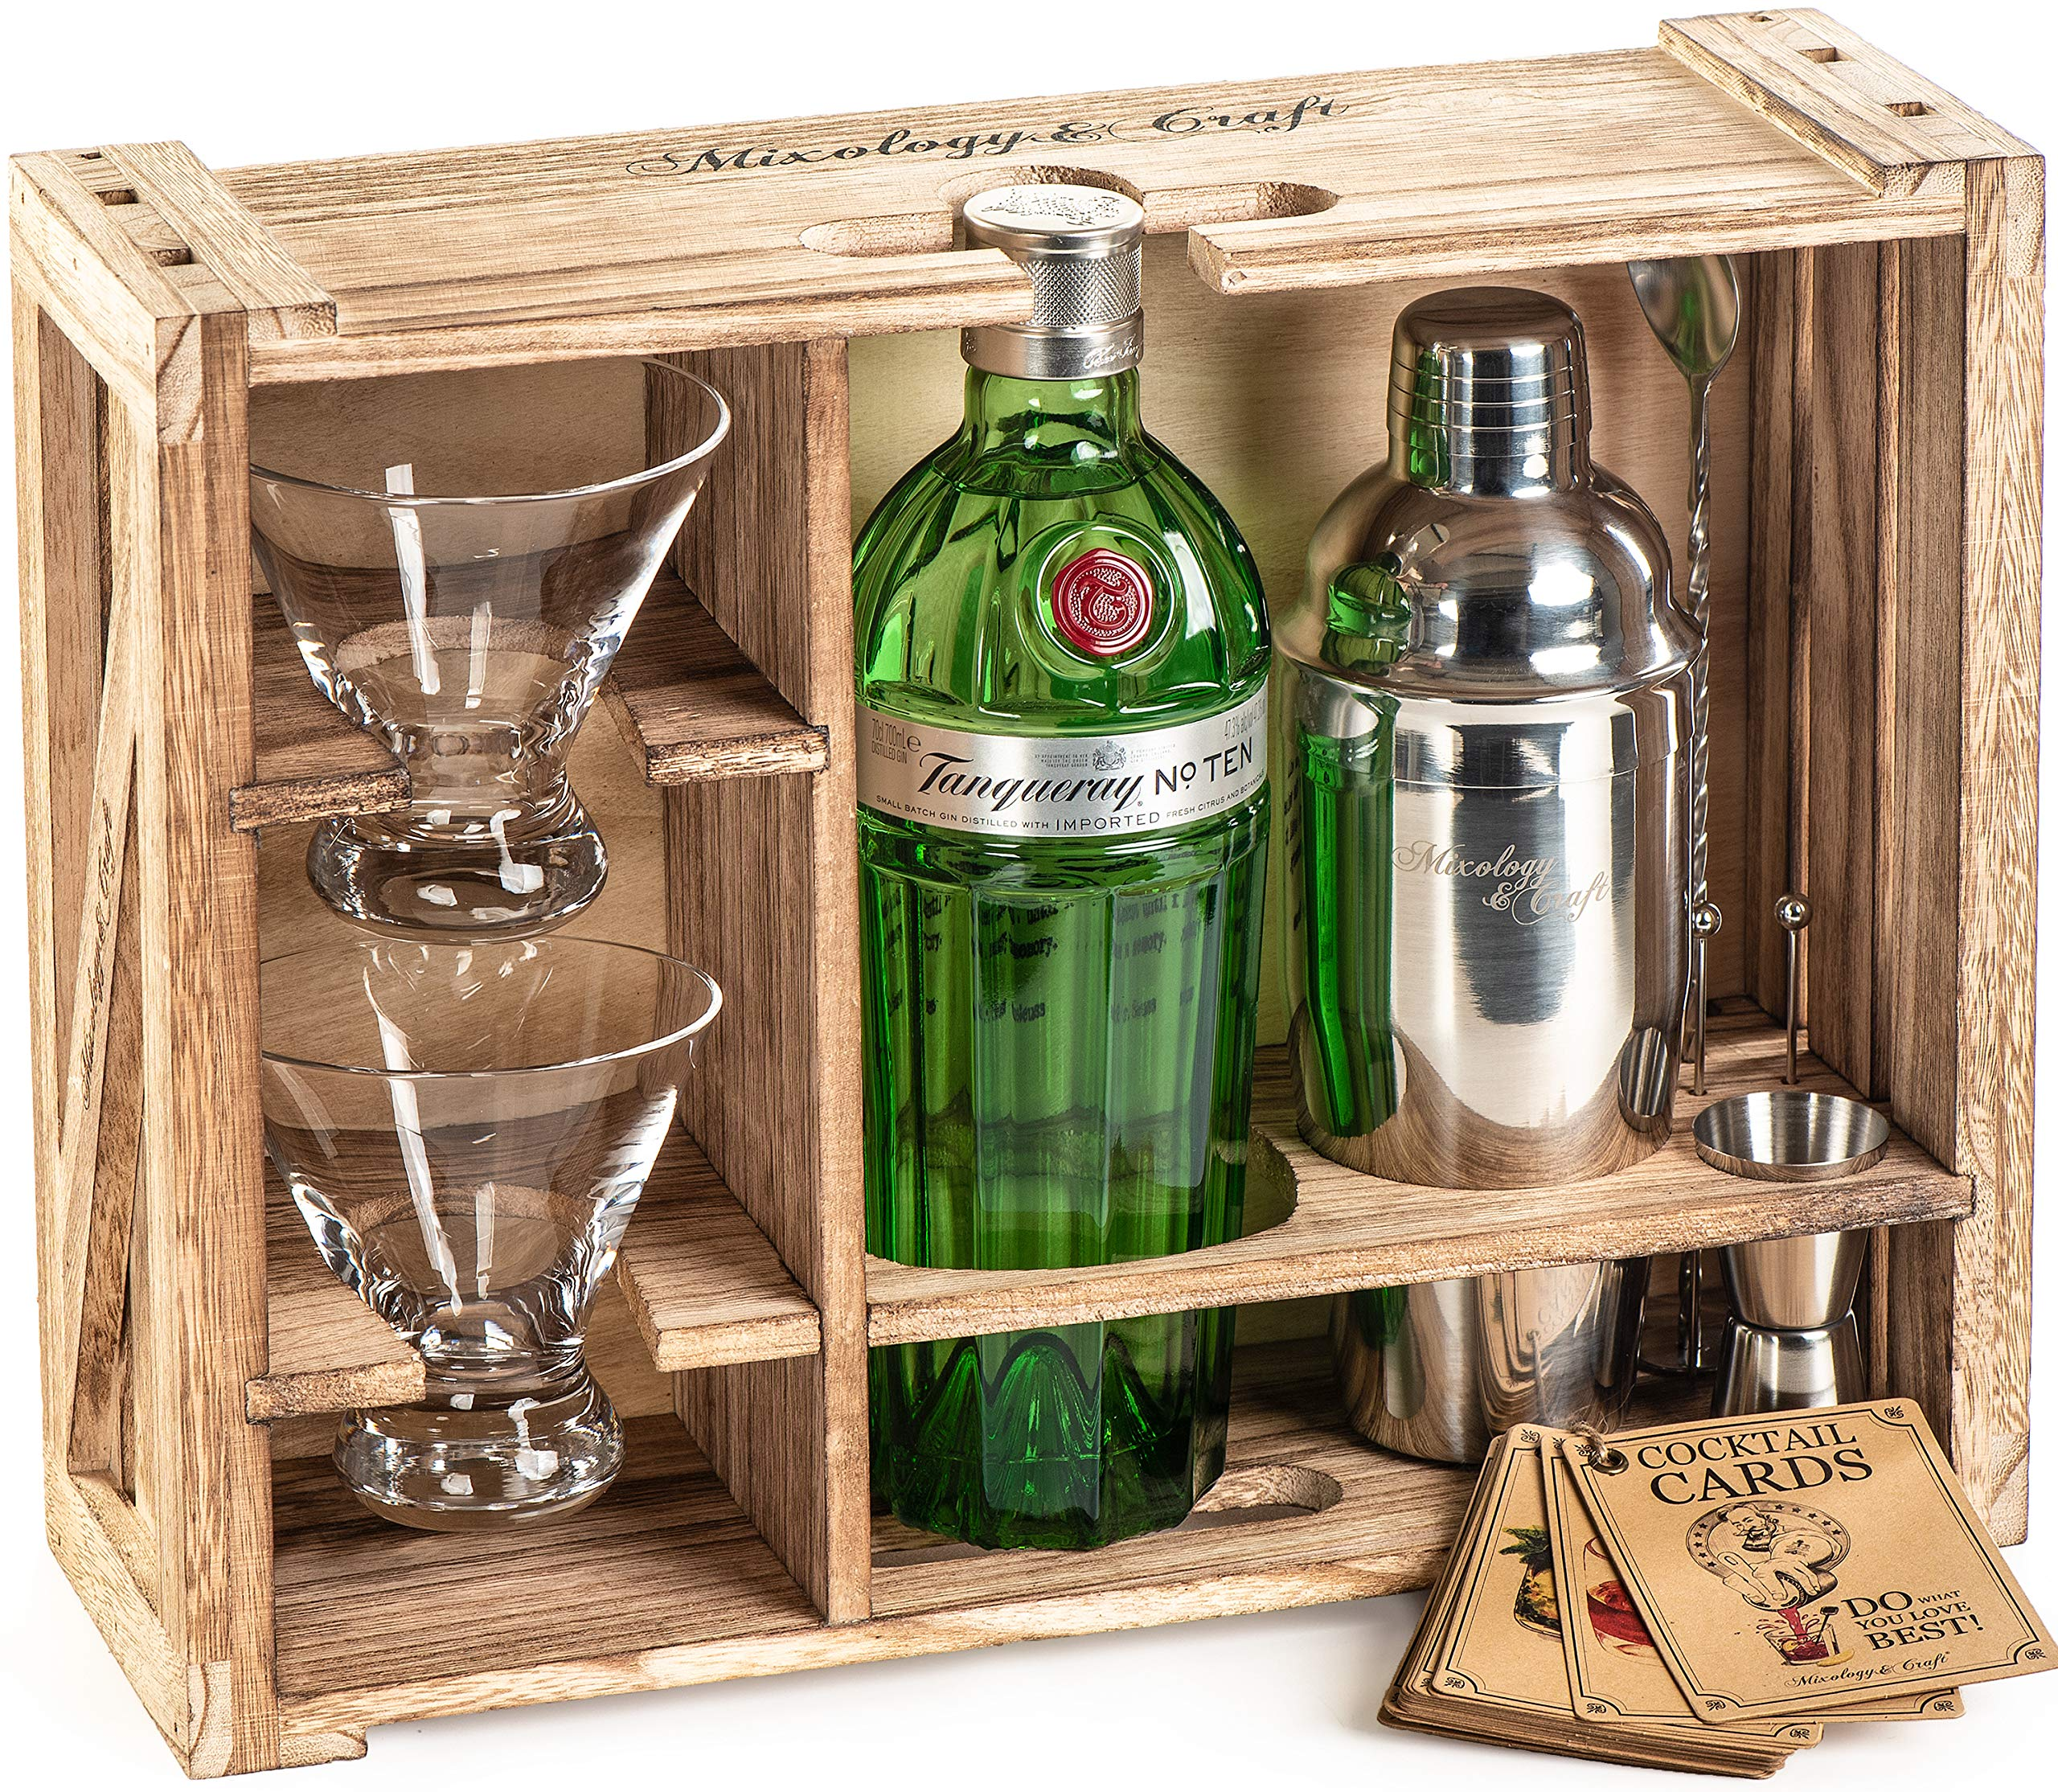 Rustic Bartender Kit with Stand | Bar Set Cocktail Shaker Set with Martini Glasses For Drink Mixing | Martini Shaker Set, Bar Tools, Cocktail Glasses (Set of 2) | Best Home Bar Shaker Set Gift by Mixology & Craft